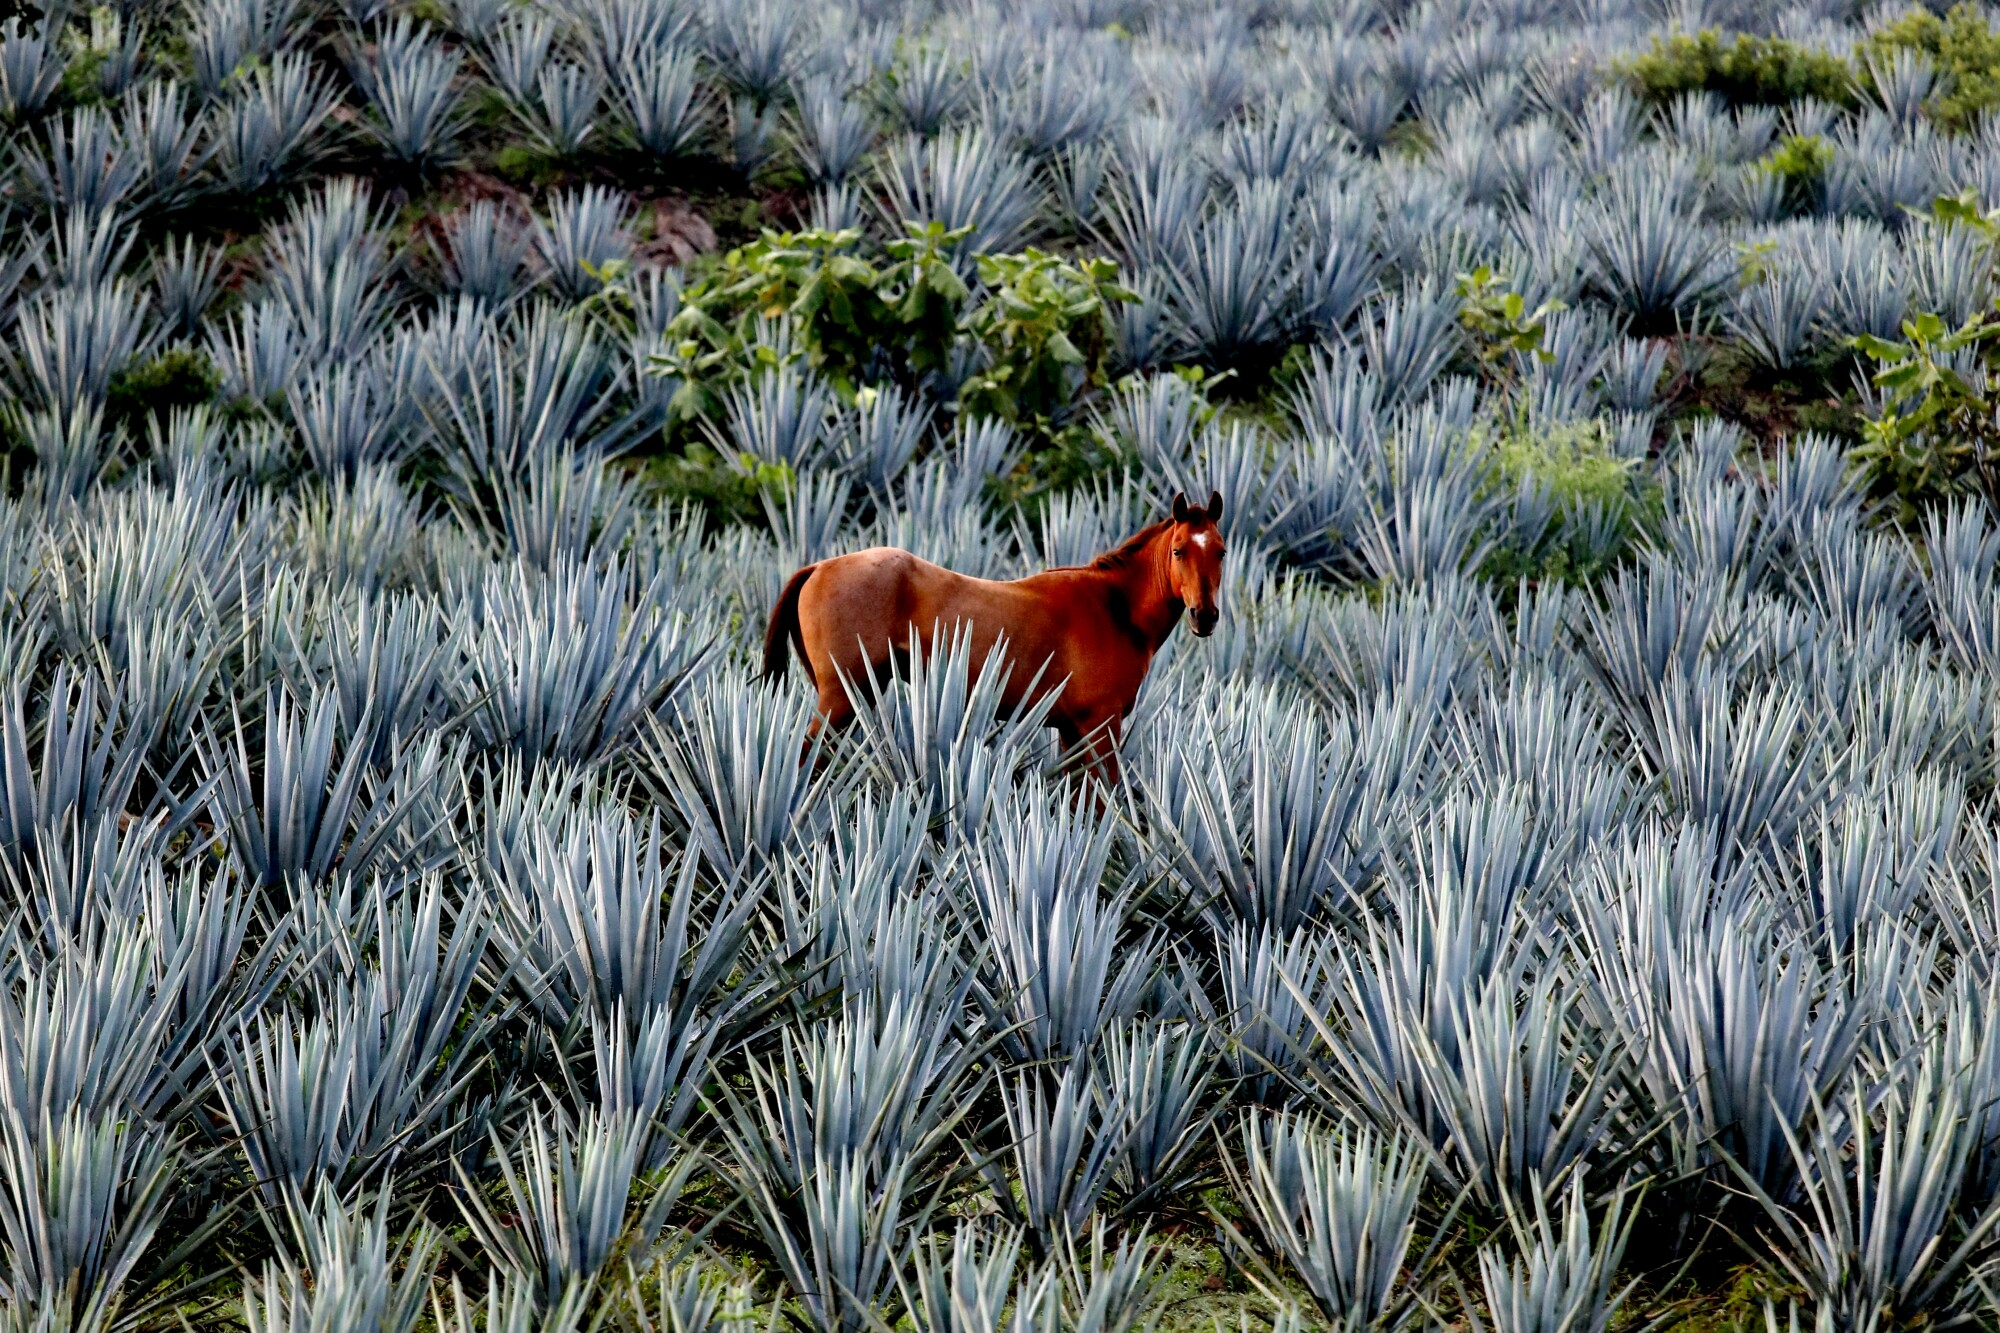 A horse grazes in a blue agave field